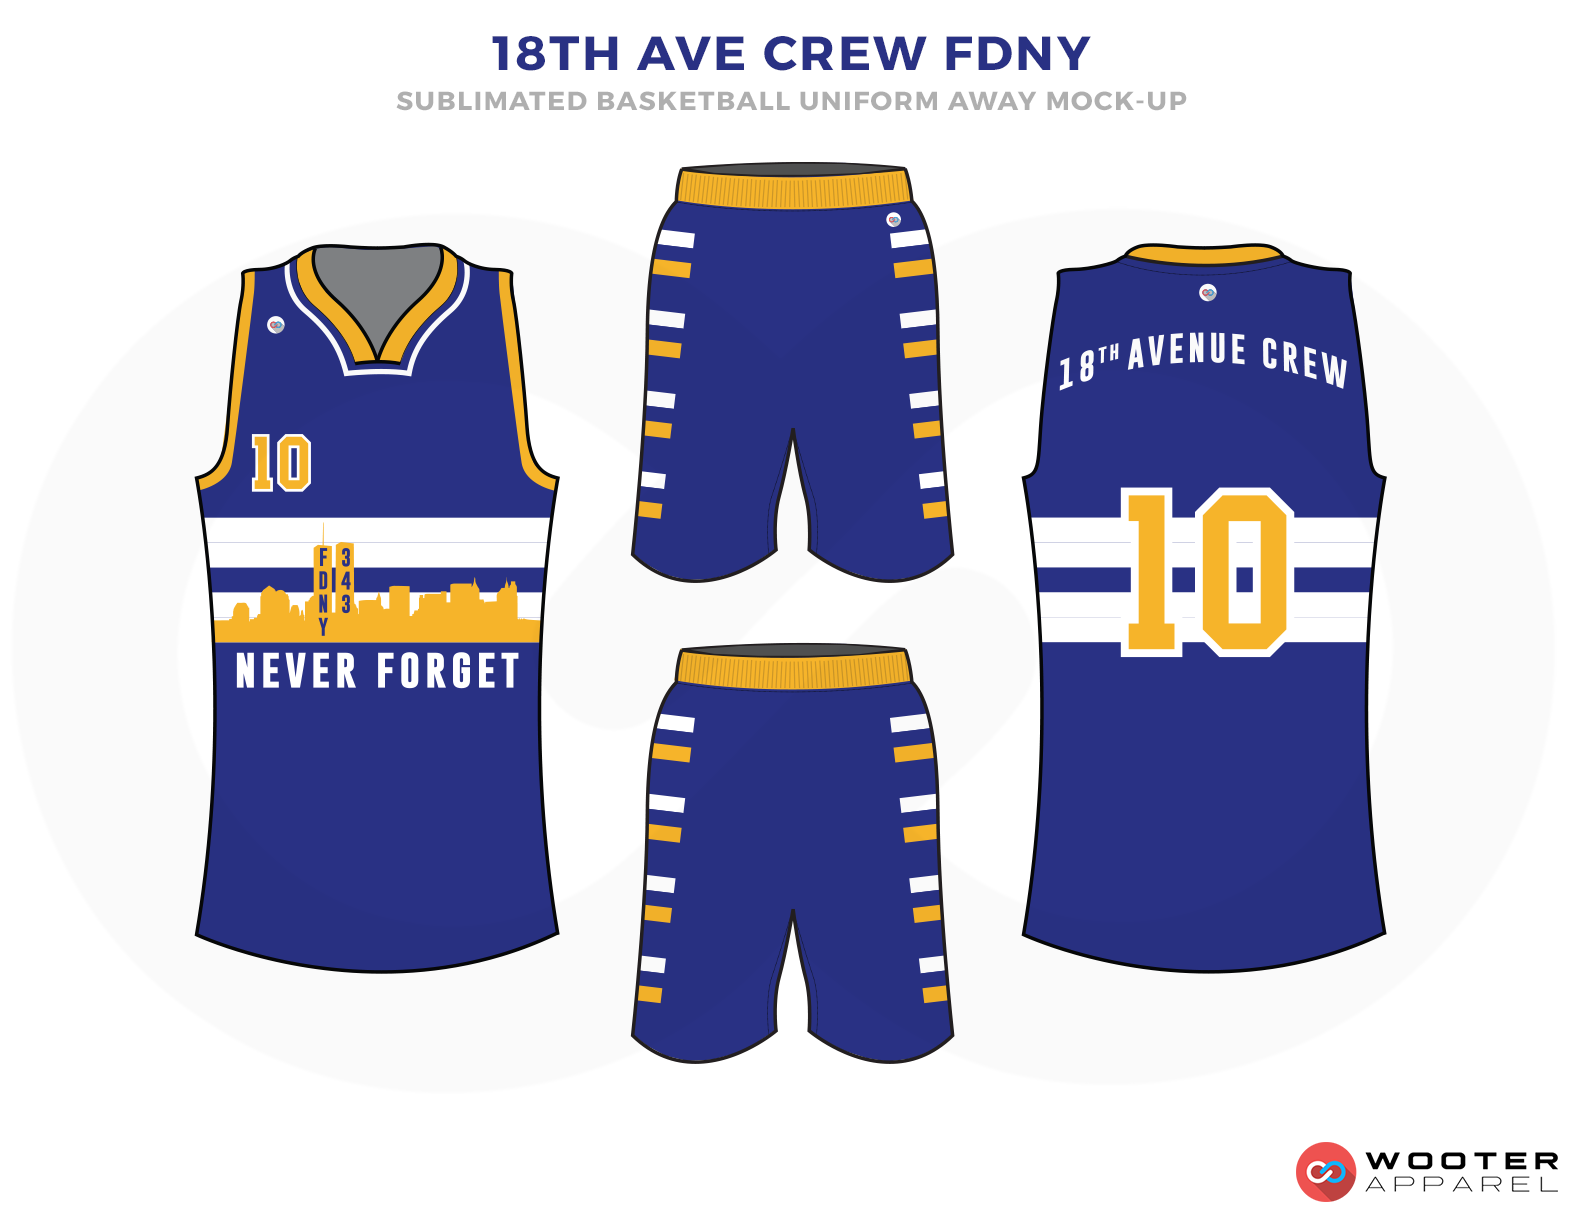 18th AVE CREW FDNY Blue White and Yellow Basketball Uniforms, Jersey and Shorts